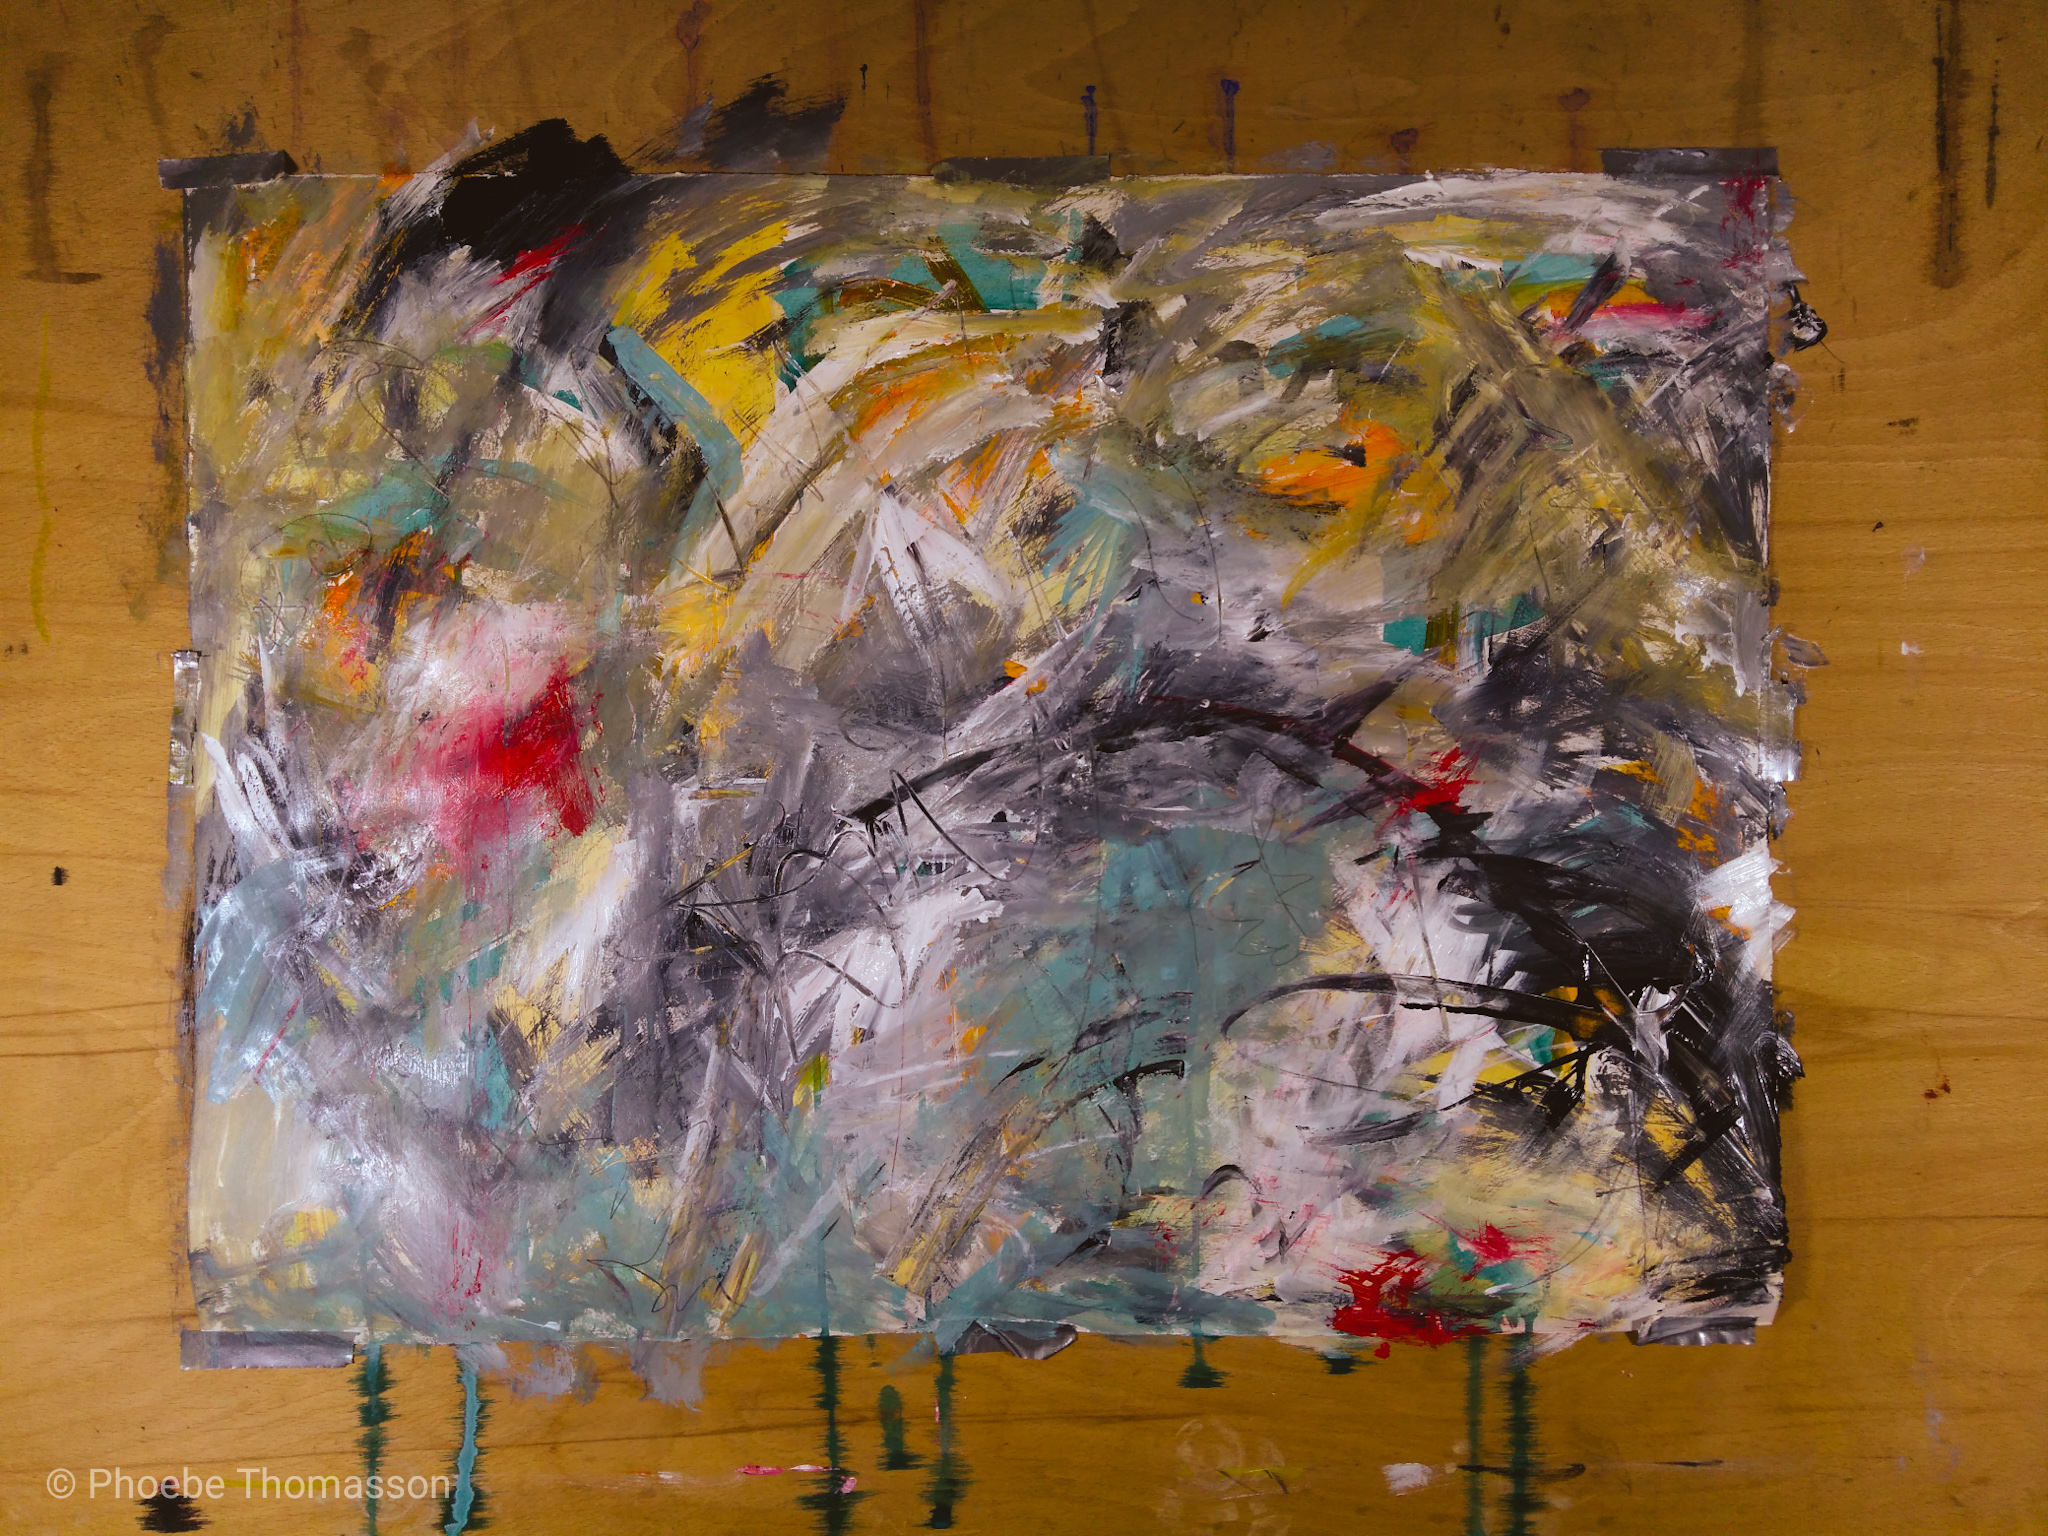 abstract painting by phoebe thomasson